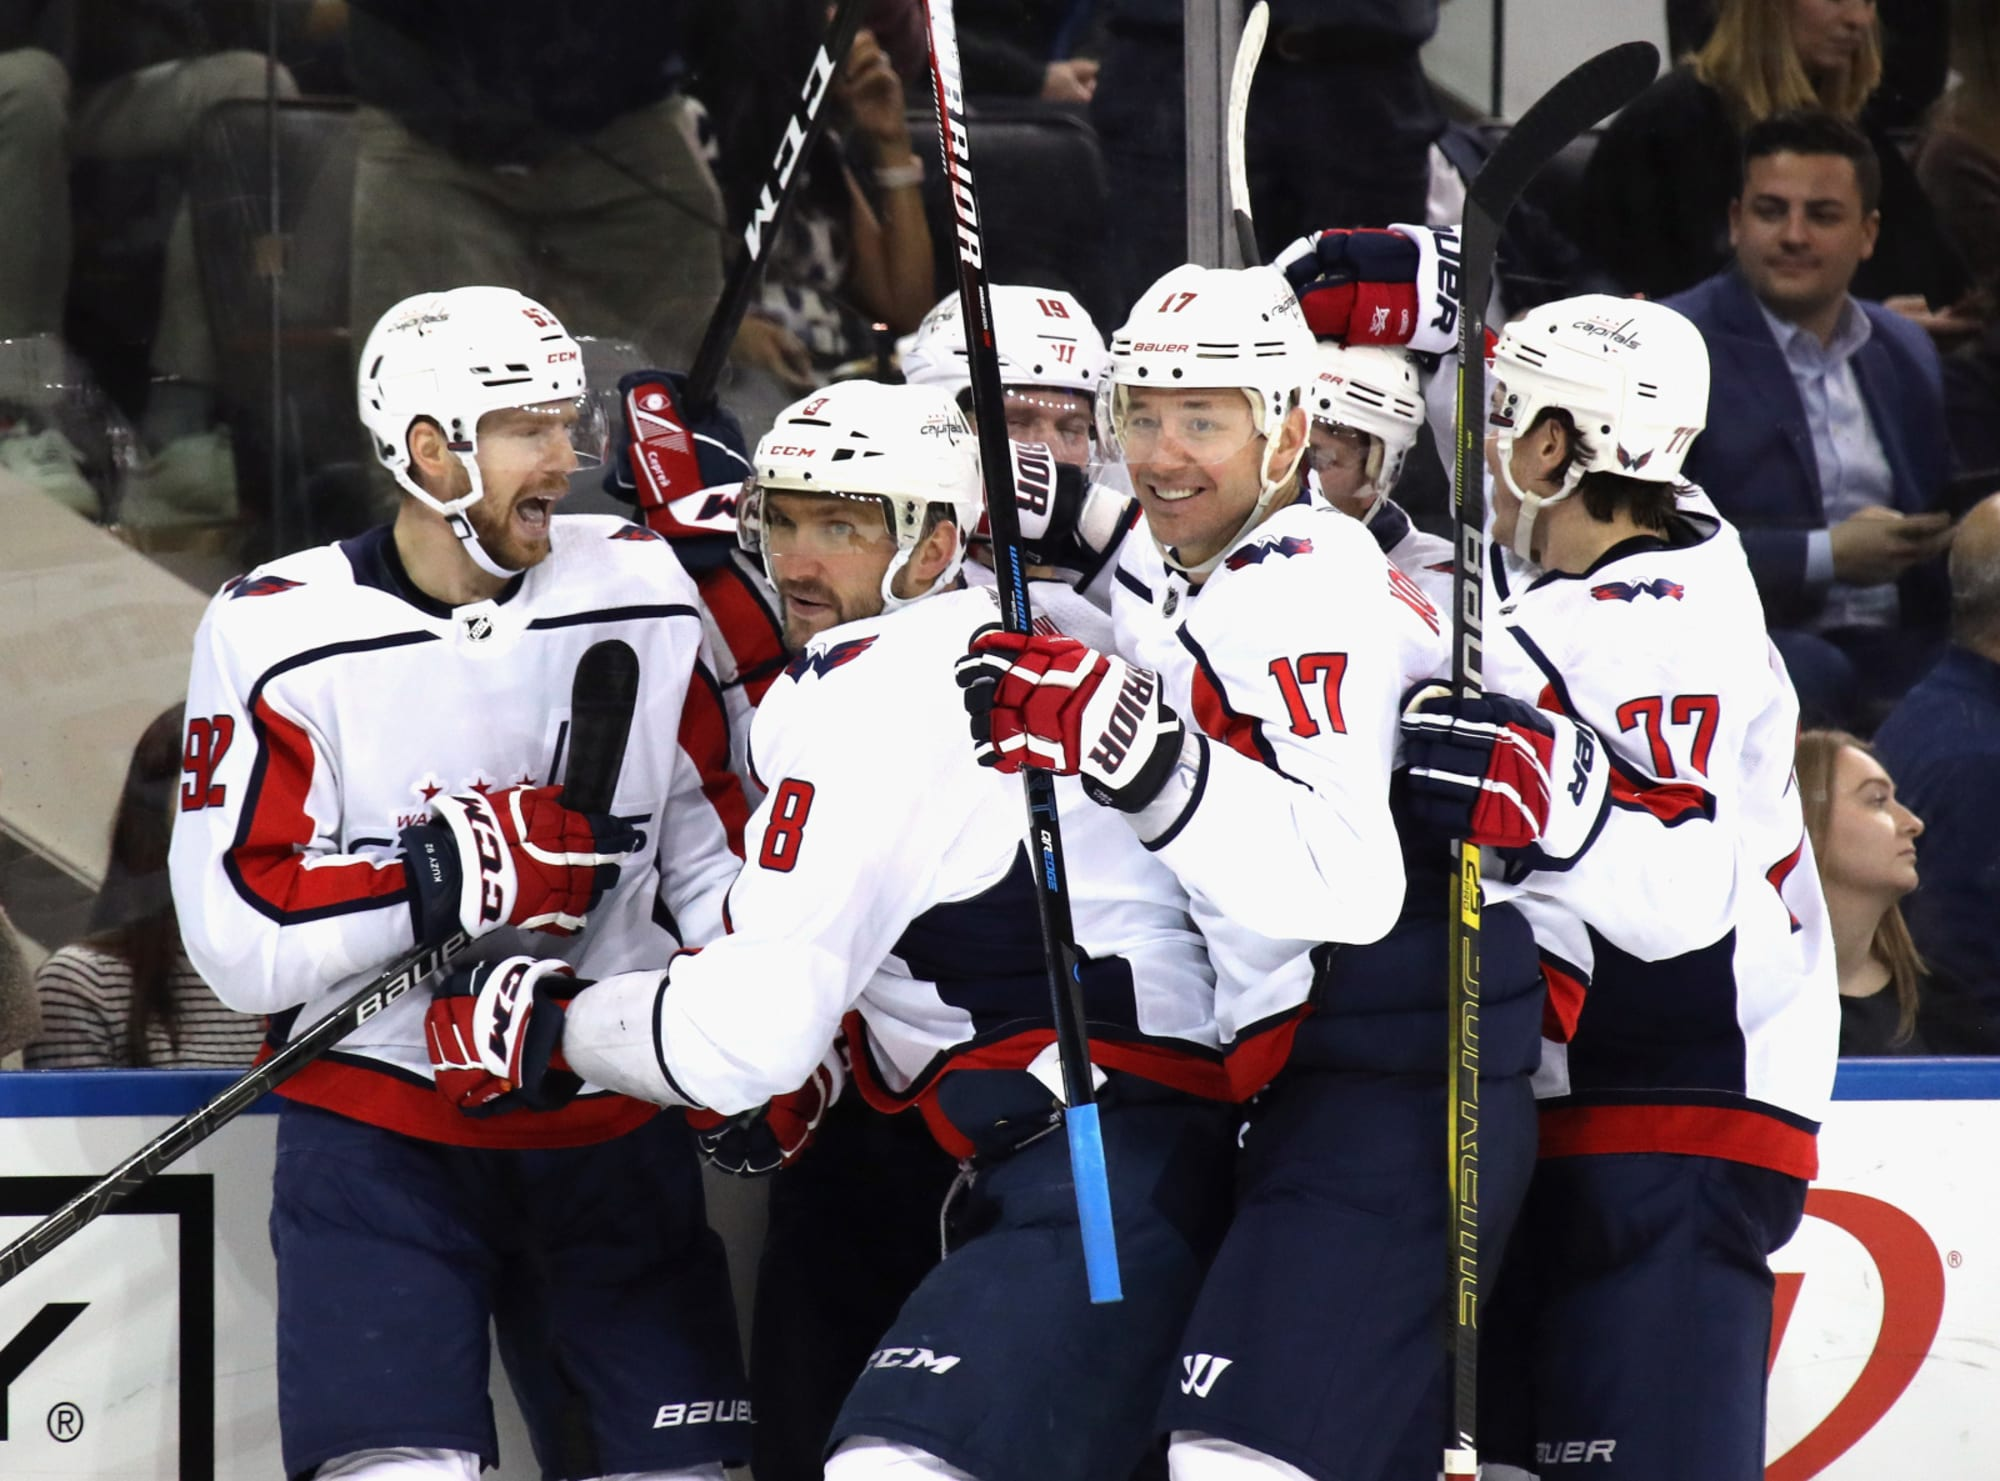 Washington Capitals: A complete list of every player's Twitter handle